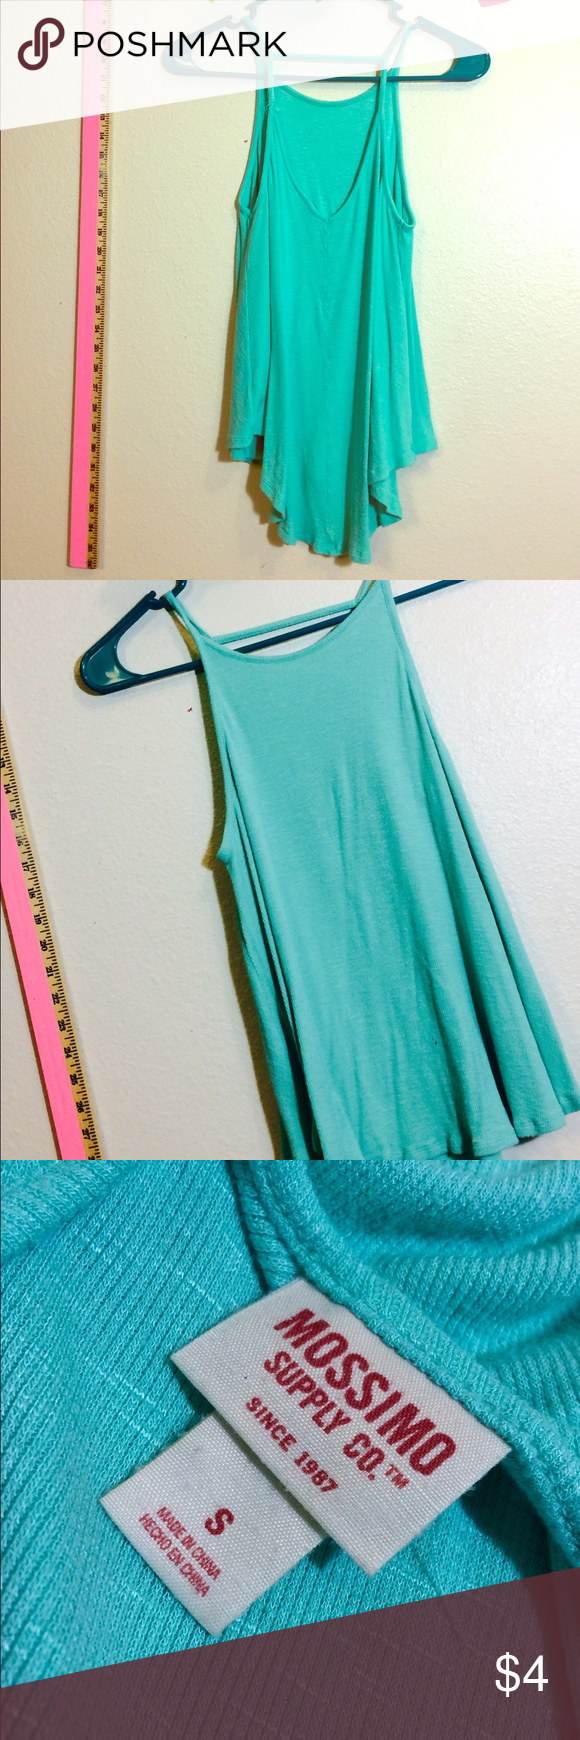 Target brand blue tank top Target brand tank with low cut back. Has small damage to a strap - fixable. Tops Tank Tops